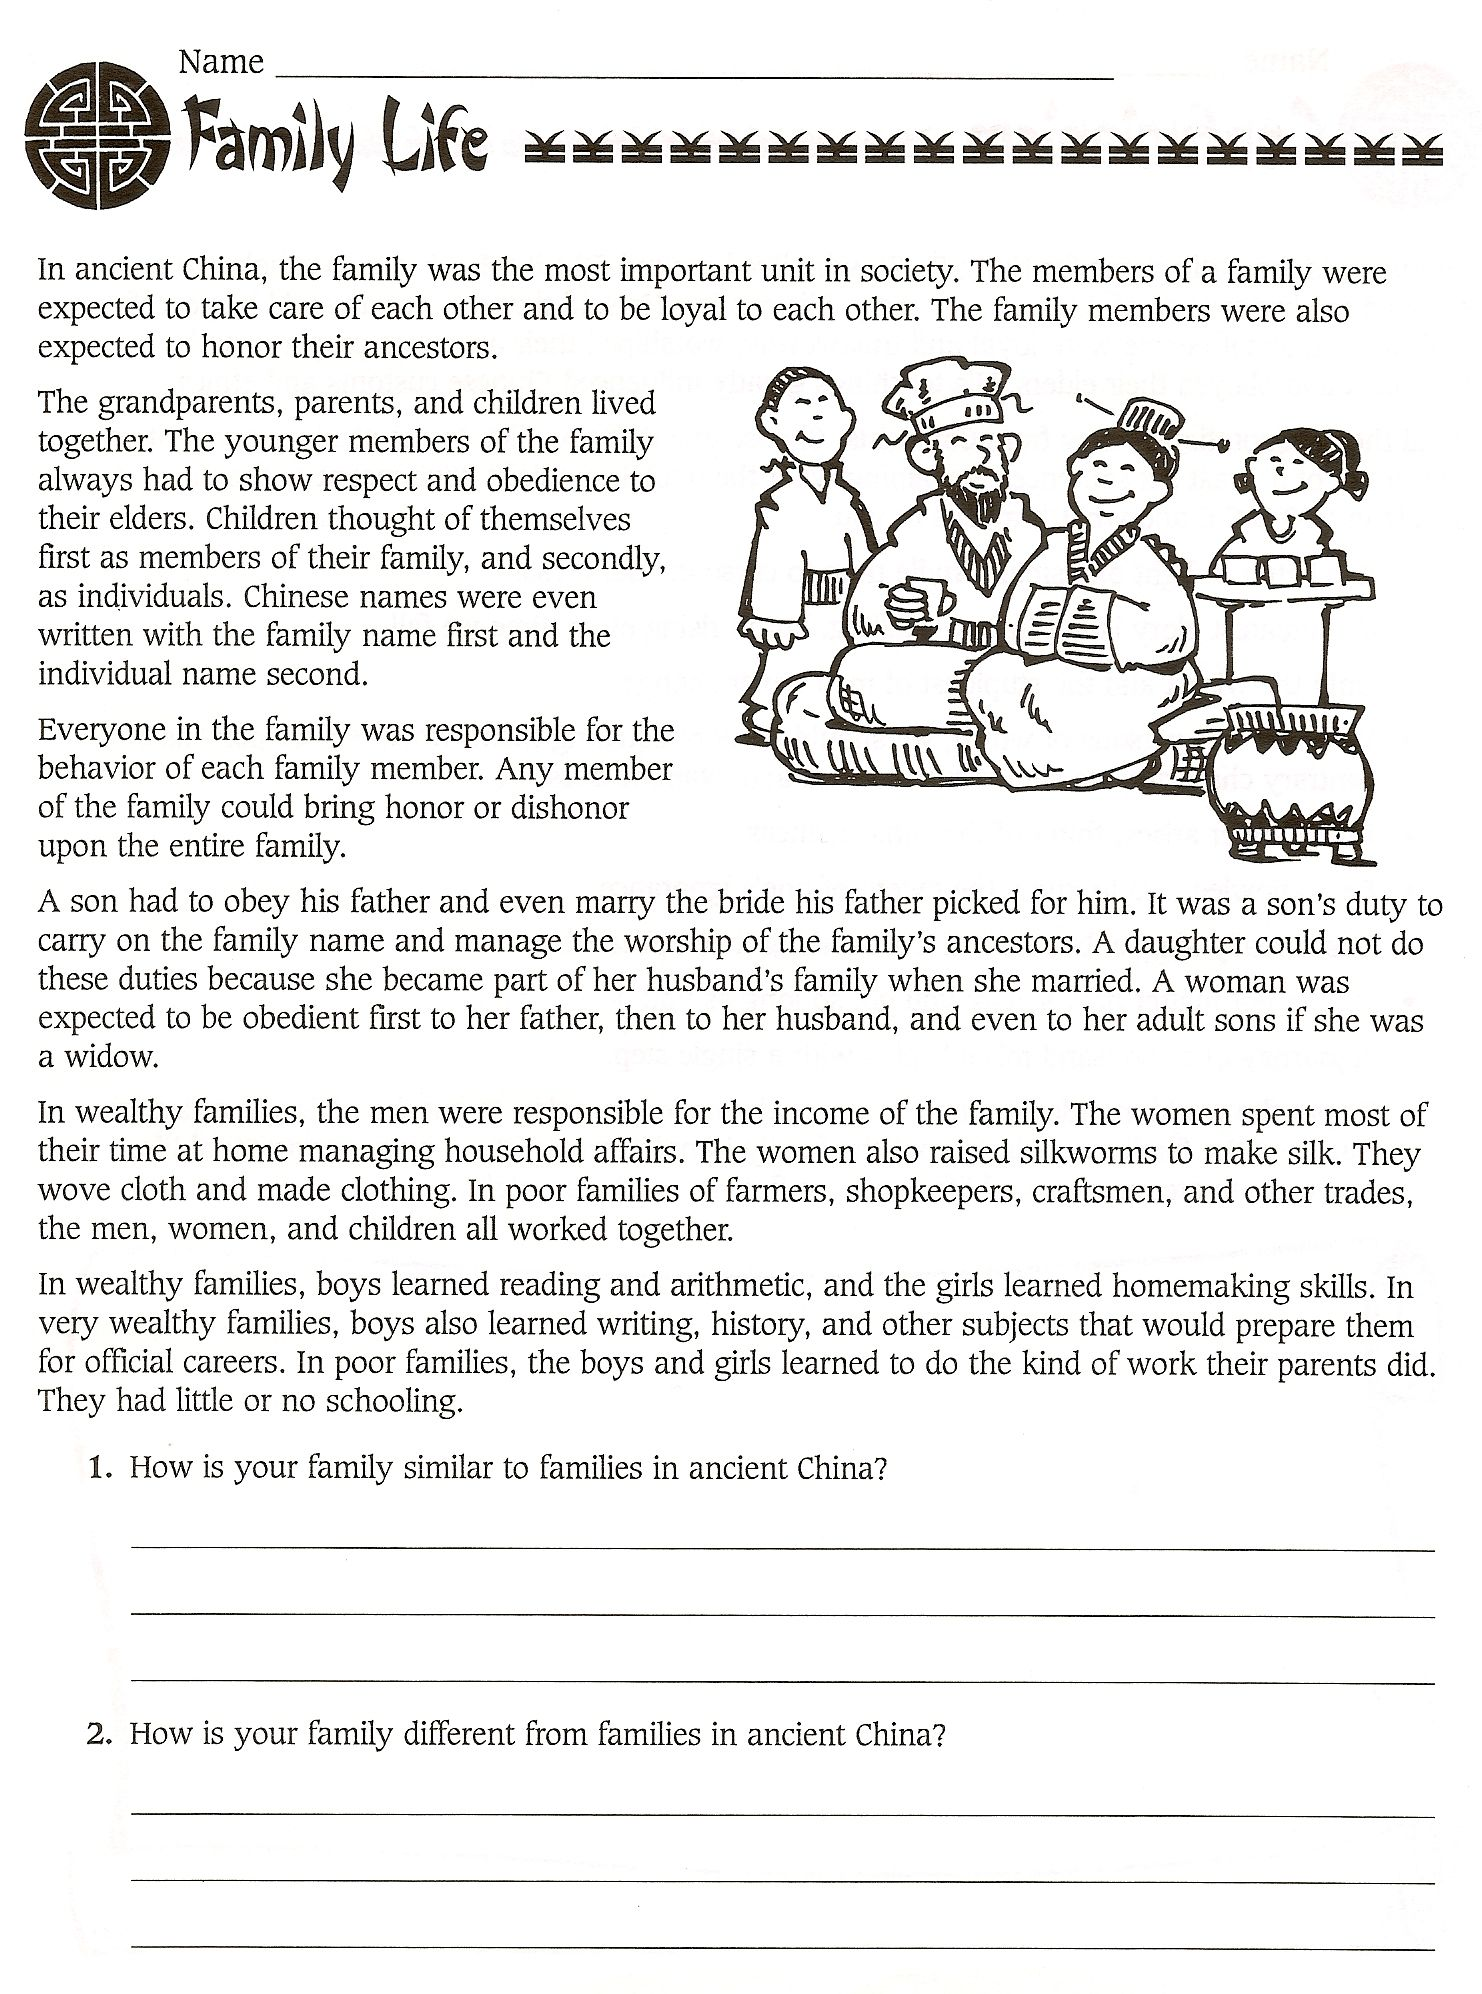 Worksheets Free Printable Social Studies Worksheets 6th grade social studies ancient china worksheets free free